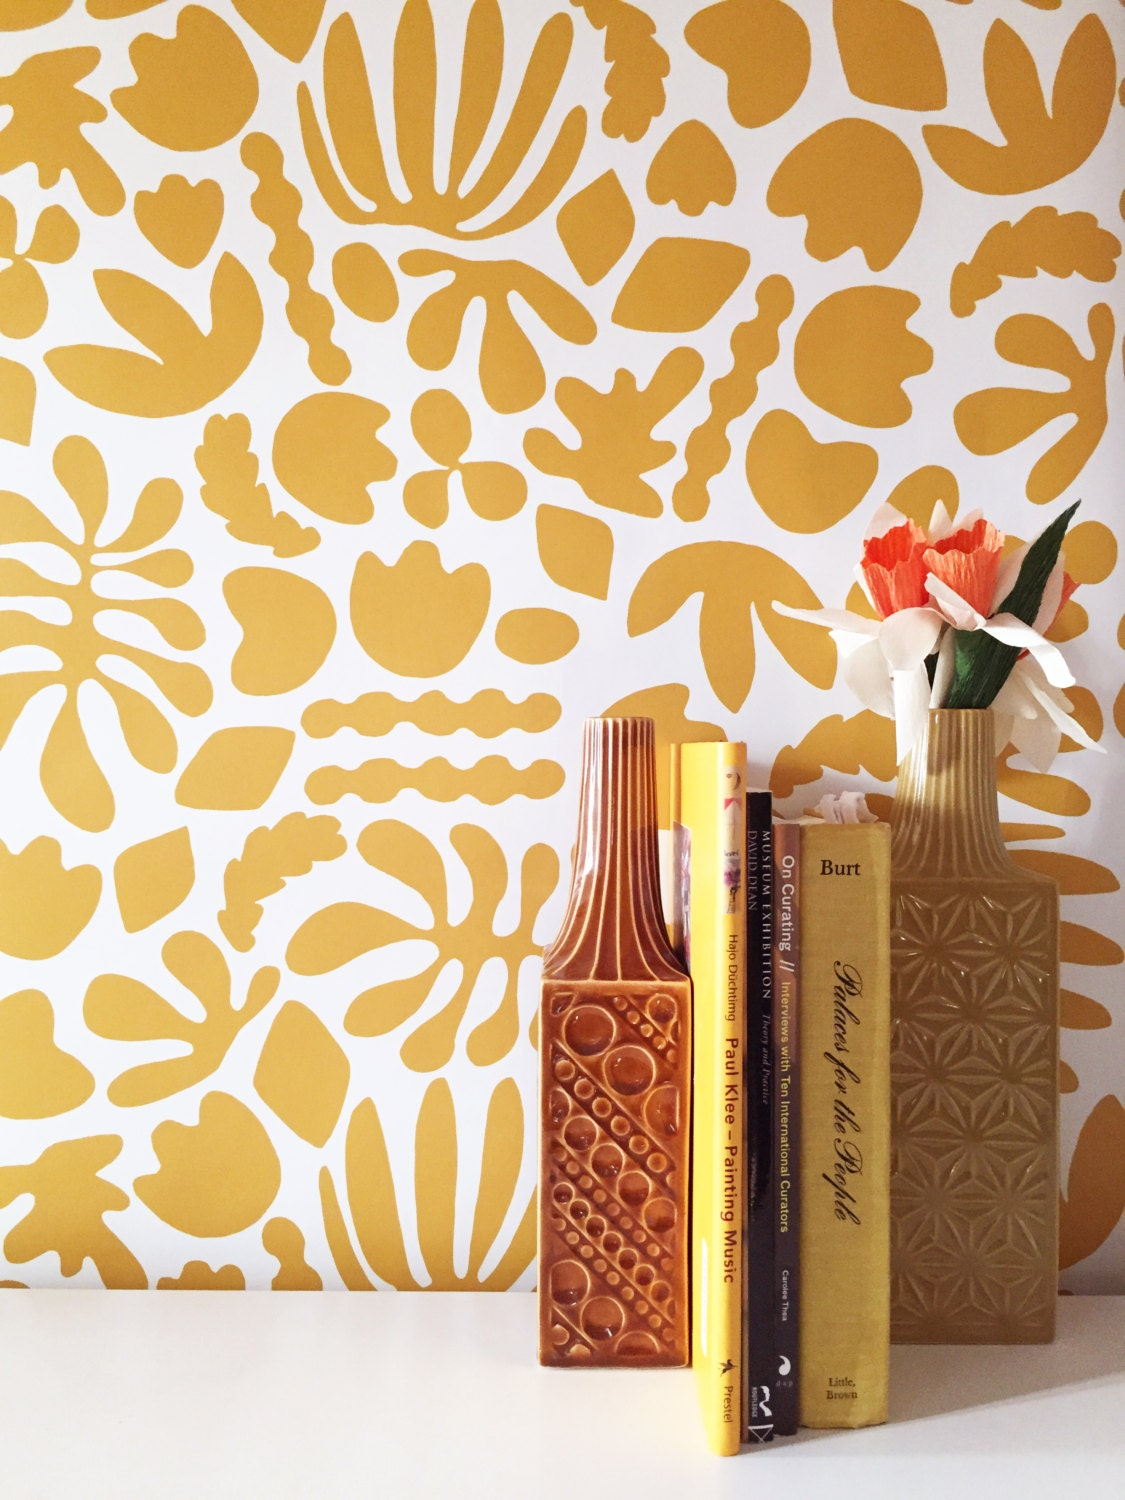 Removable Wallpaper Muse In Mustard Adheres To Walls And